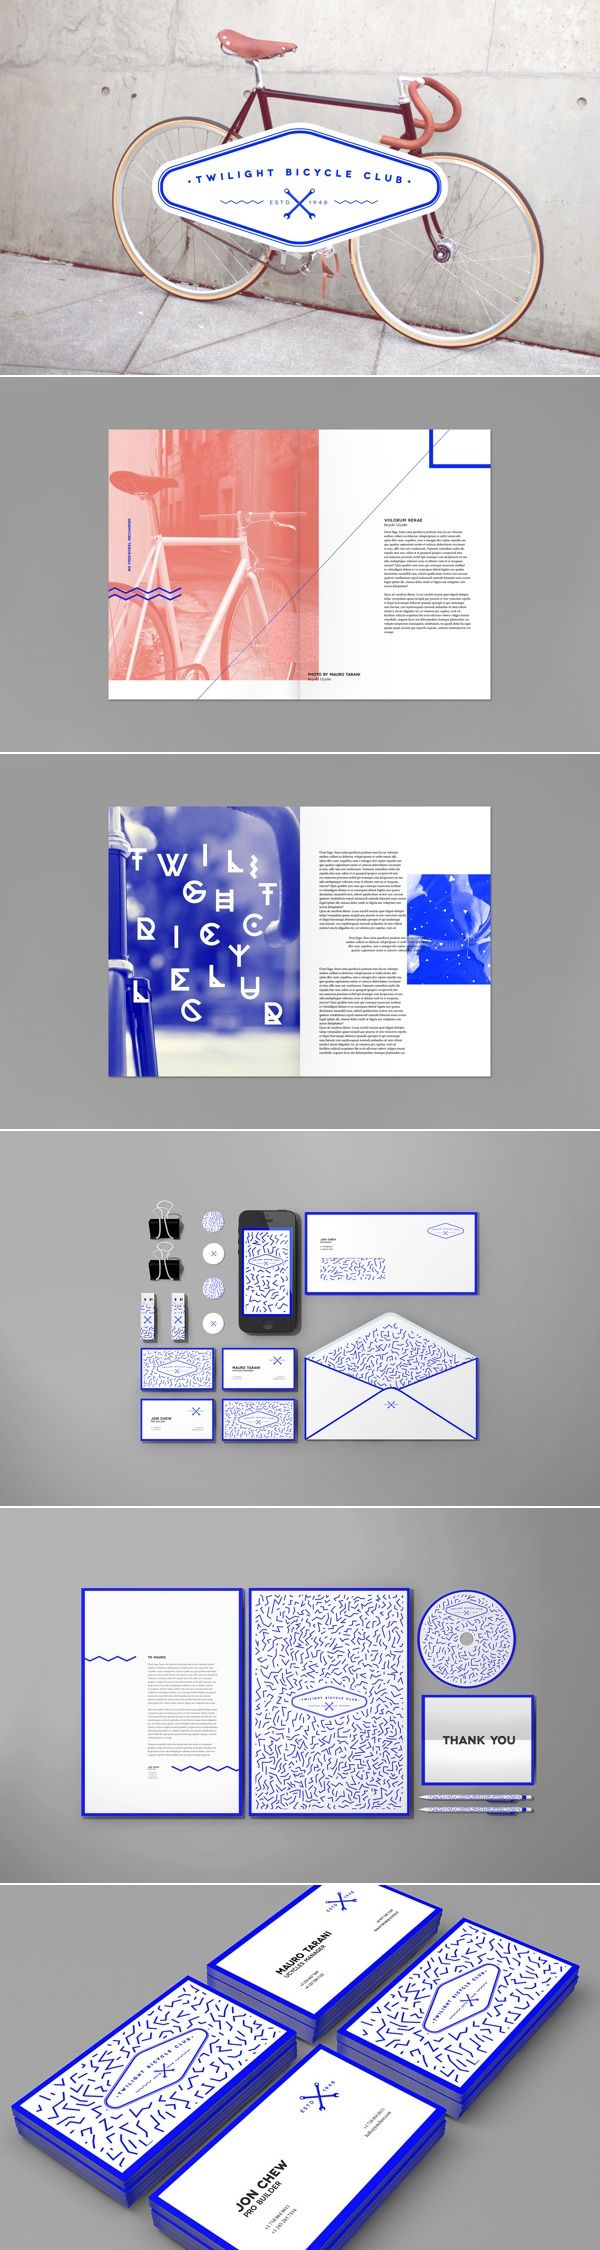 Twilight Bicycle Club| #stationary #corporate #design #corporatedesign #identity #branding #marketing < repinned by www.BlickeDeeler.de | Take a look at www.LogoGestaltung-Hamburg.de